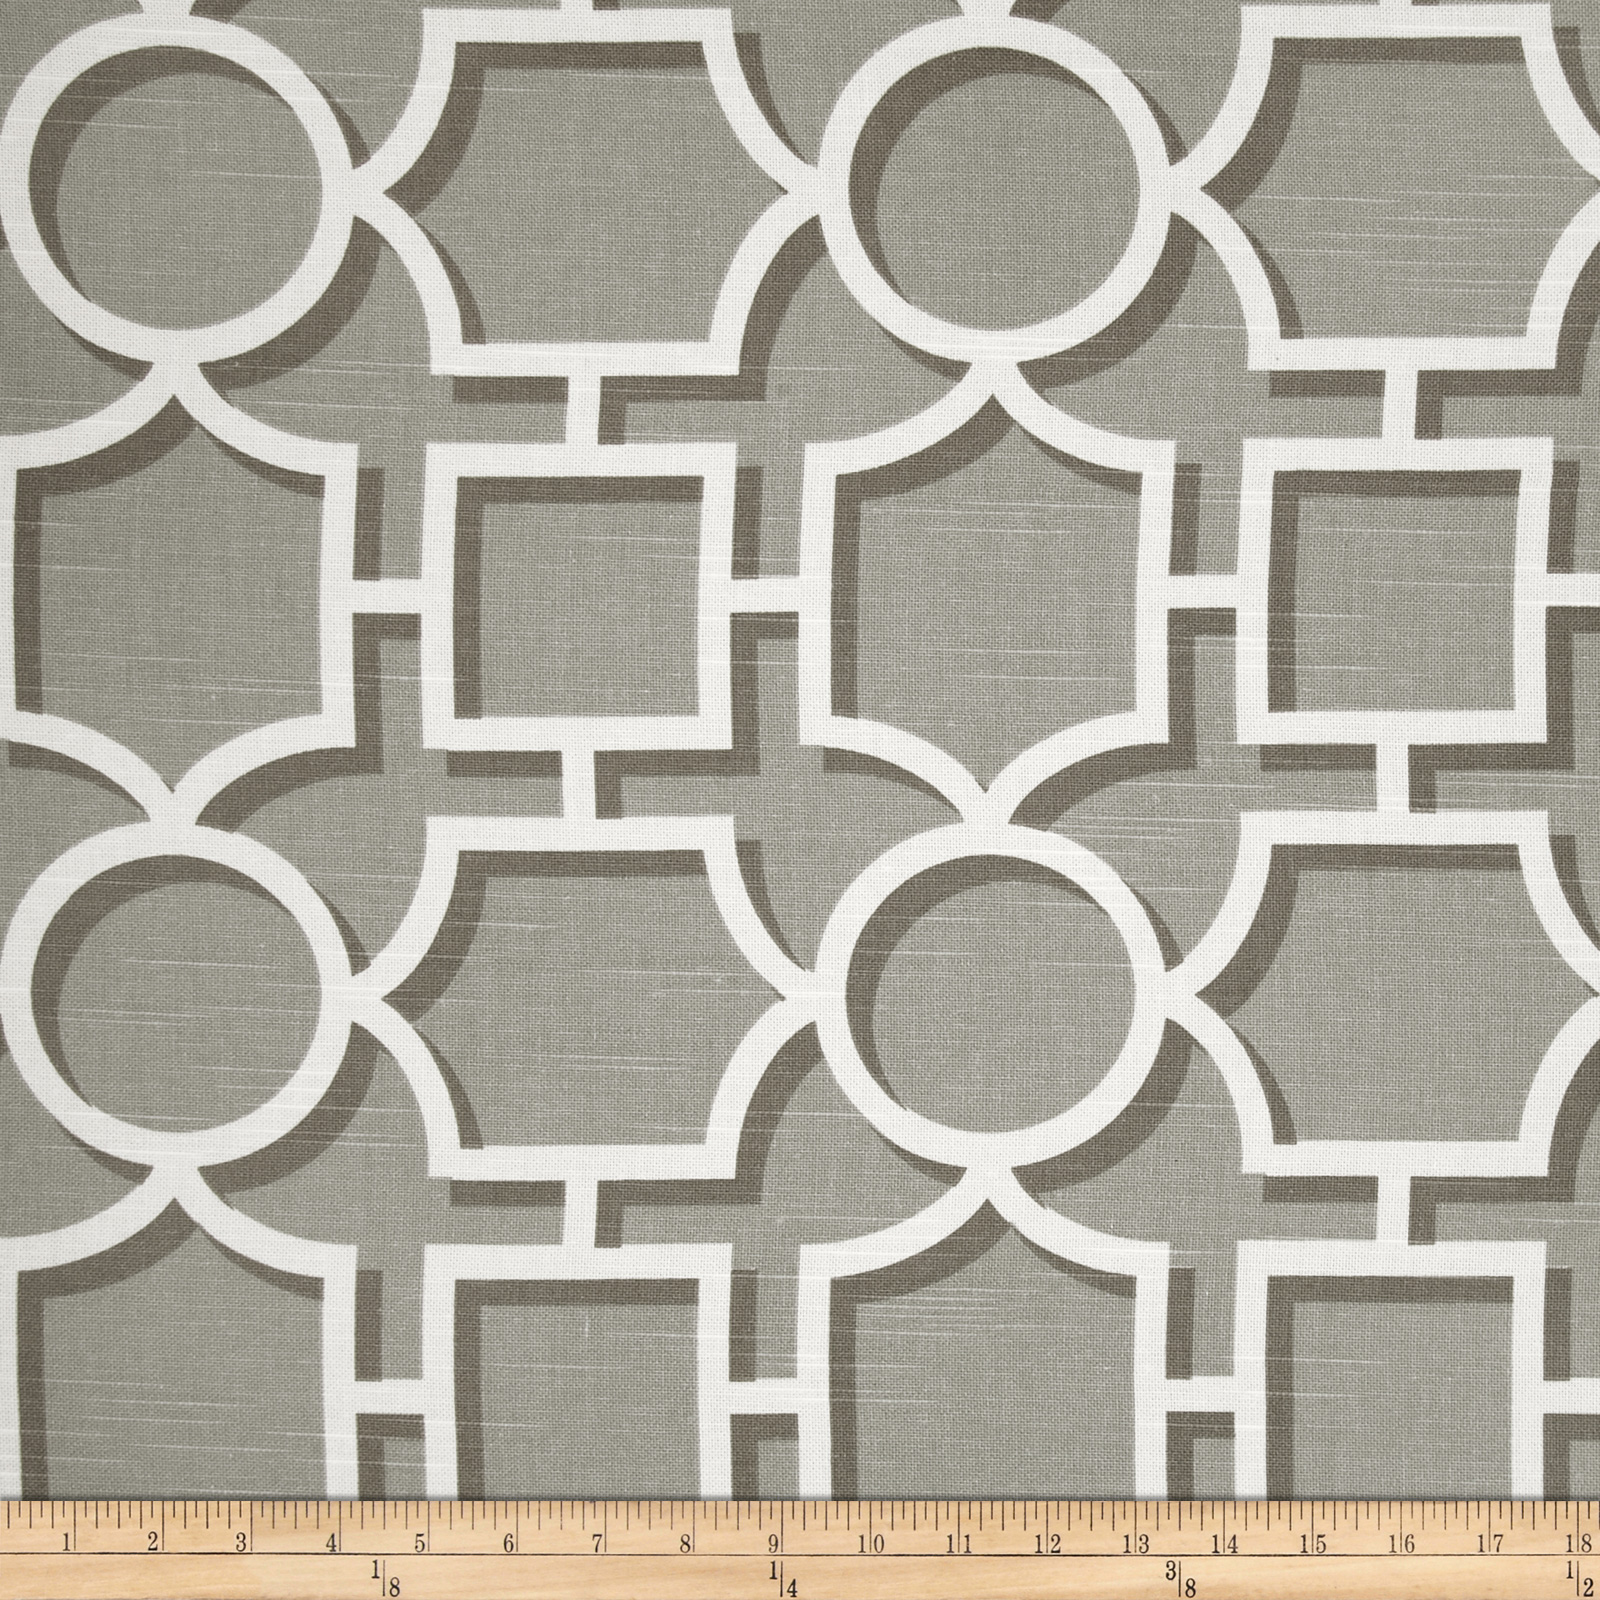 Dwell Studio Vreeland Slub Brindle Fabric